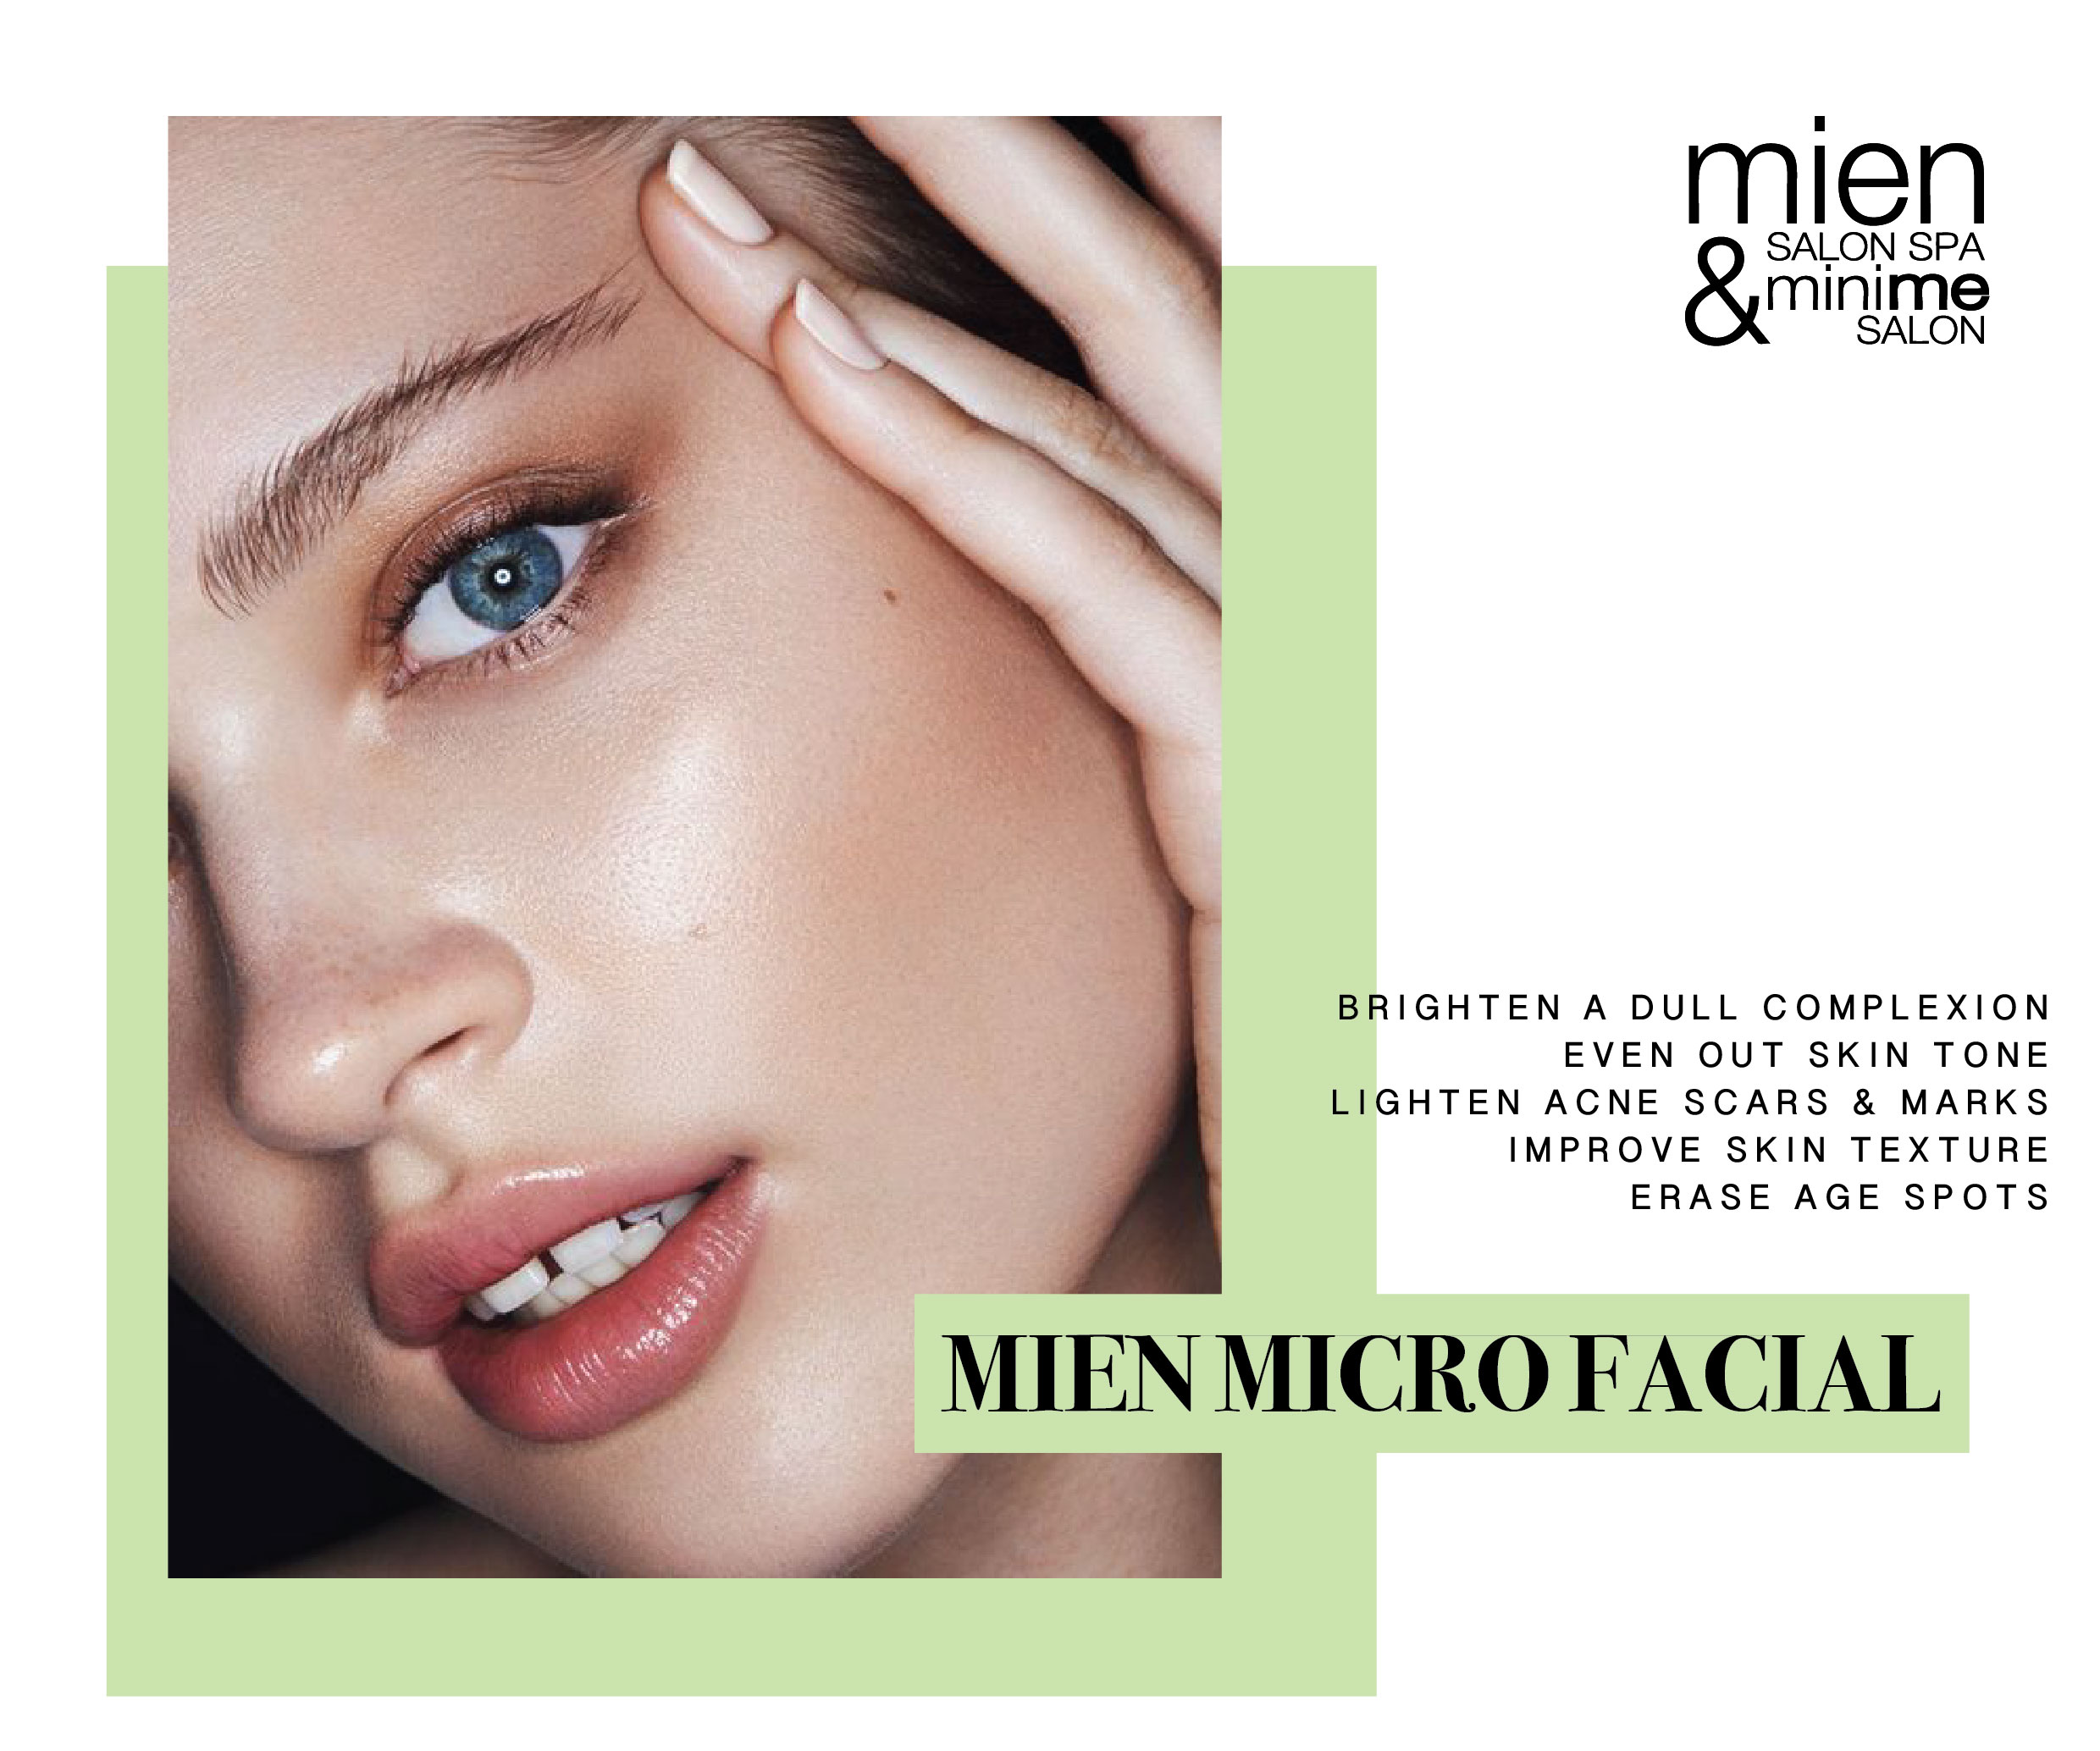 - Microdermabrasion is a deeply effective treatment for renewing a fresh, young-looking glow to your skin. It's one of the simplest and least disruptive skin treatments to have and is ideal even for people with sensitive skin.